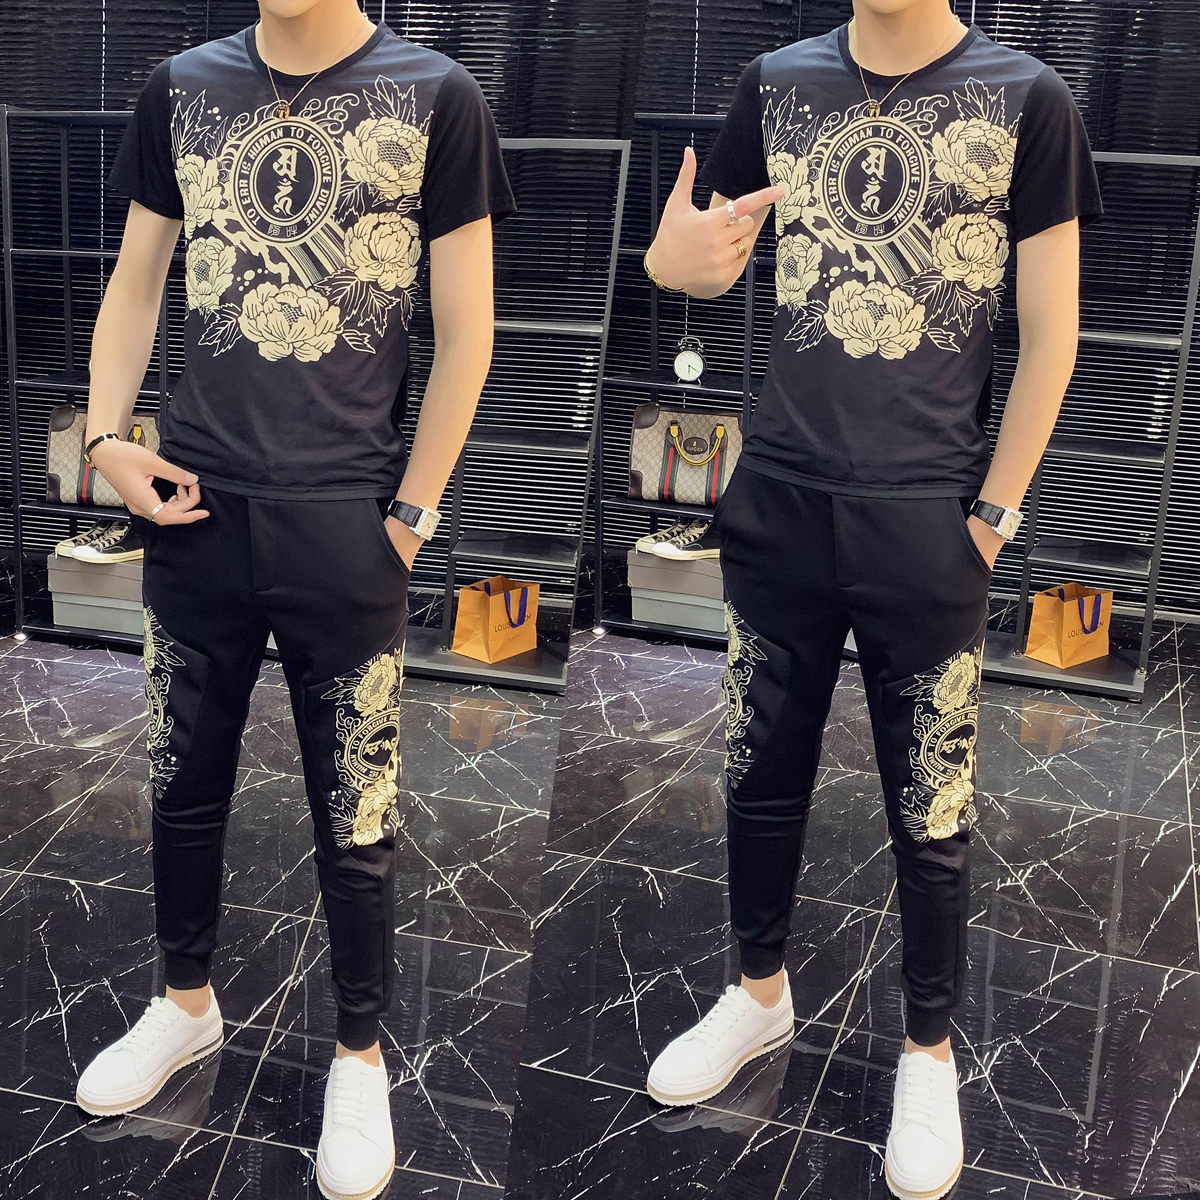 2020 High Quality Fashion Two Piece Set Men Tracksuit Slim Fit Outfits Men Set Short Sleeve T Shirt 2 Piece Set Top And Pant Men